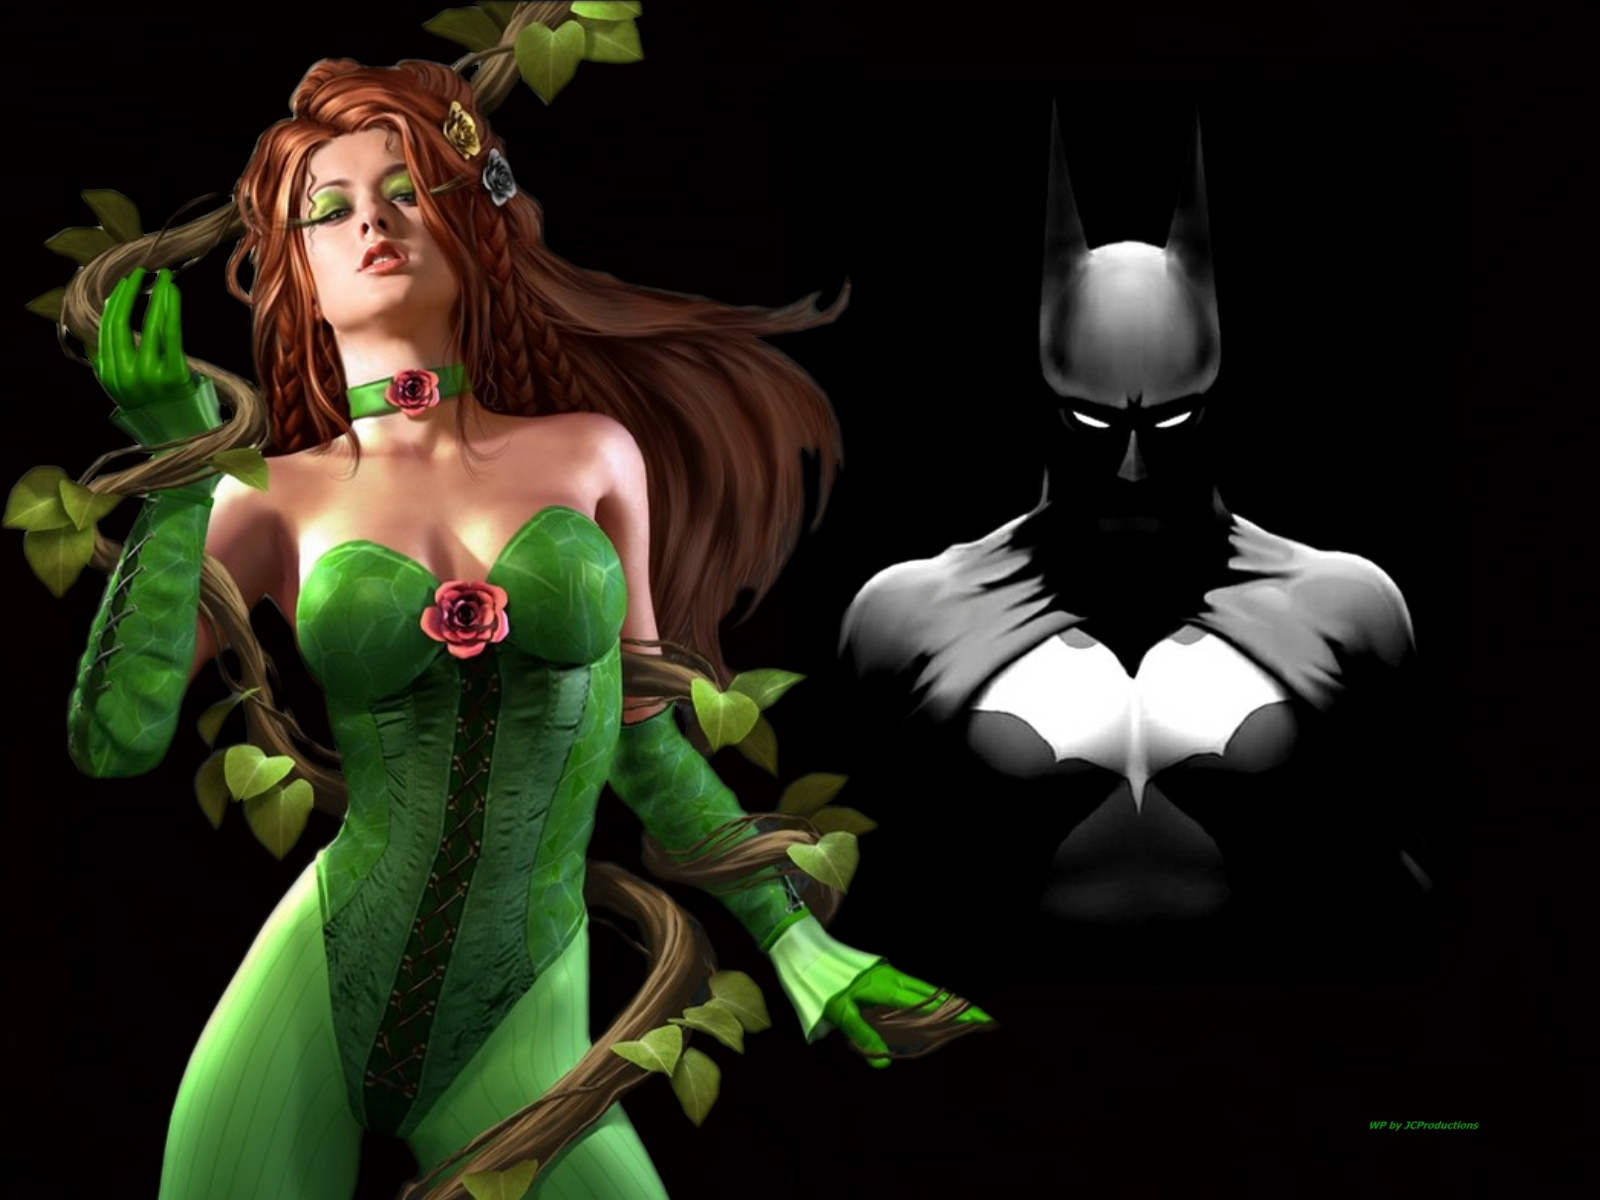 Batman-and-Poison-Ivy-batman-27163543-1600-1200 jpgPoison Ivy Batman